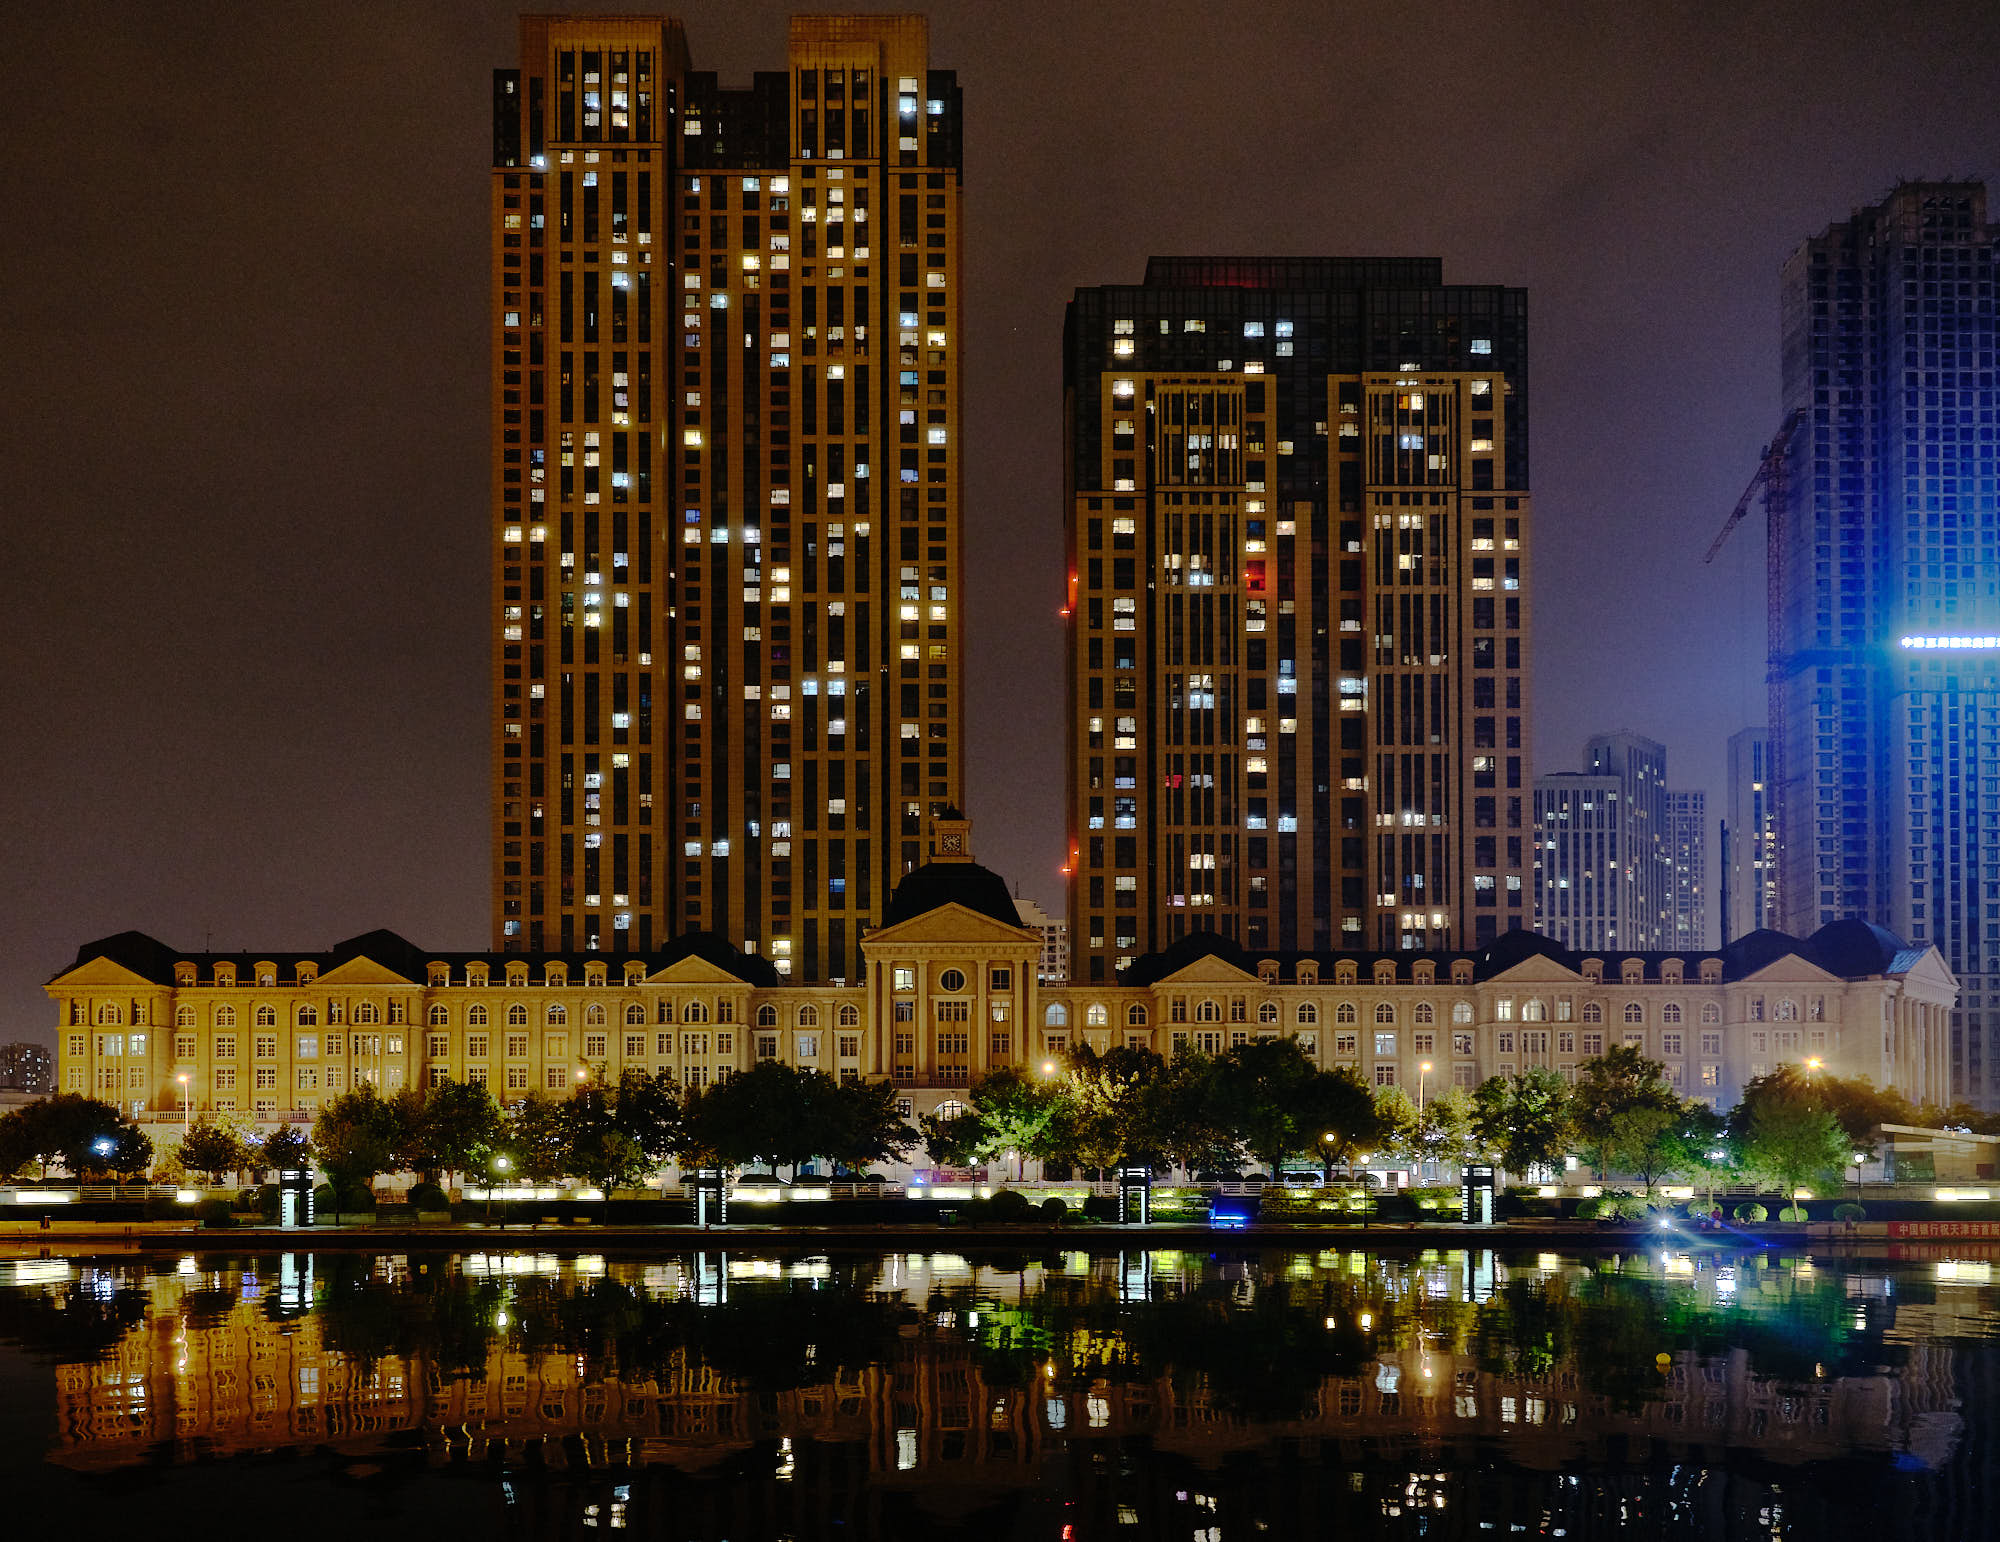 European architecture lit up at night in Tianjin, China